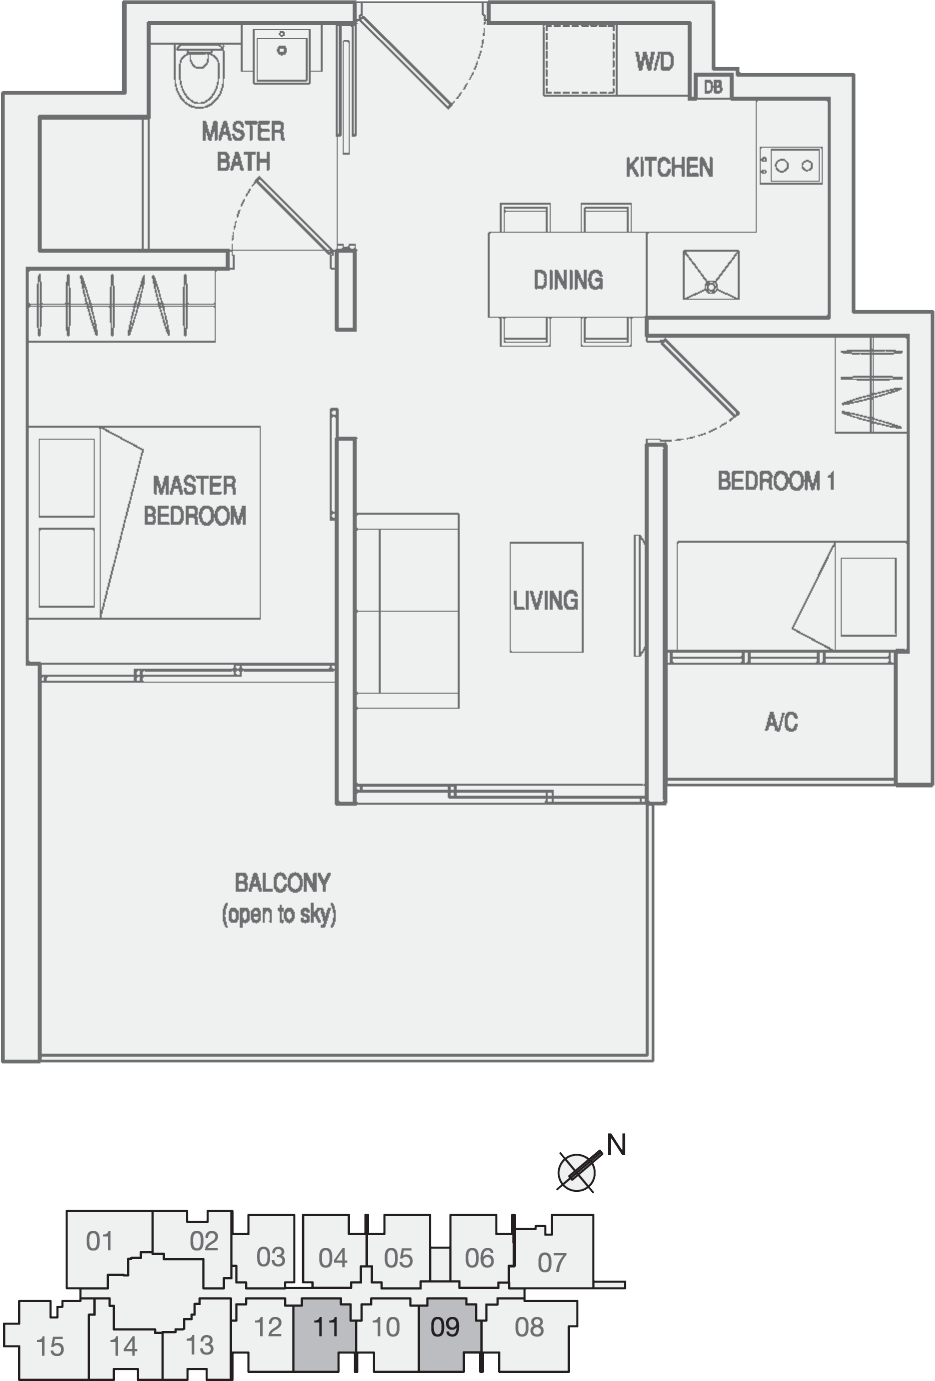 Type Type-C2(m) 2 Bedroom with Balcony Floor Plan